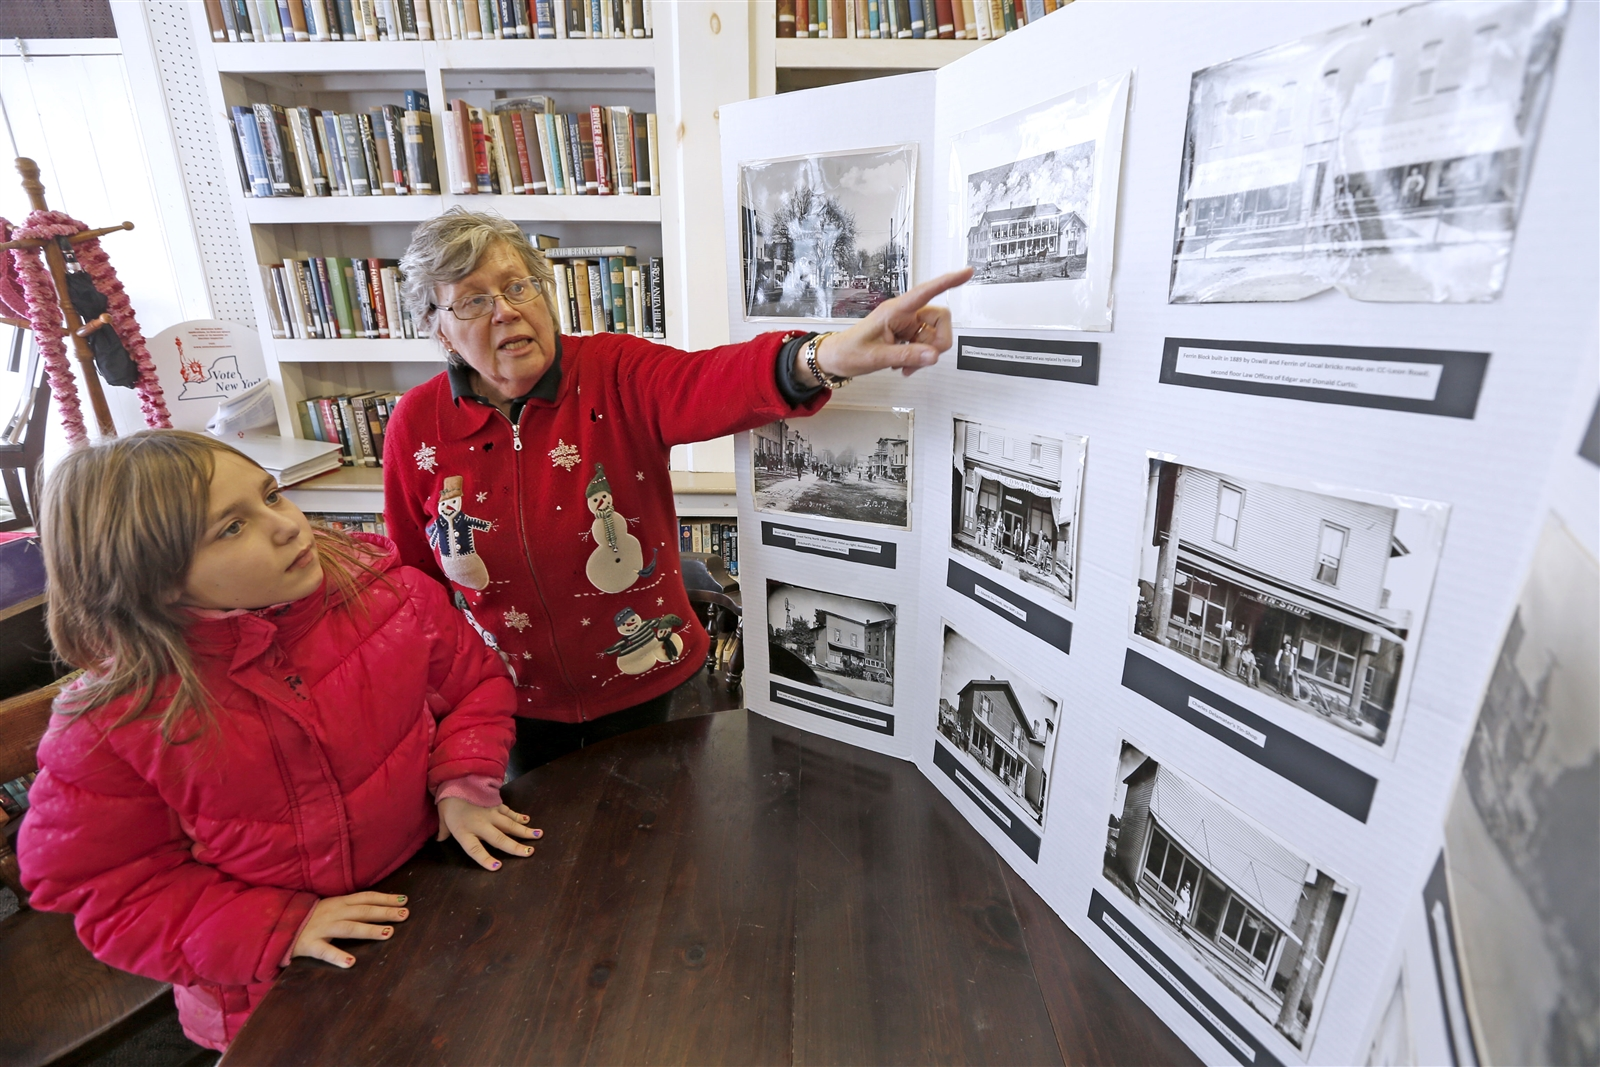 Town historian and librarian Sharon Howe  discusses vintage photos of the Village of Cherry Creek with Shawna Nichols, 9, a Pine Valley Central School second-grader, at the Cherry Creek Library on Feb. 3.